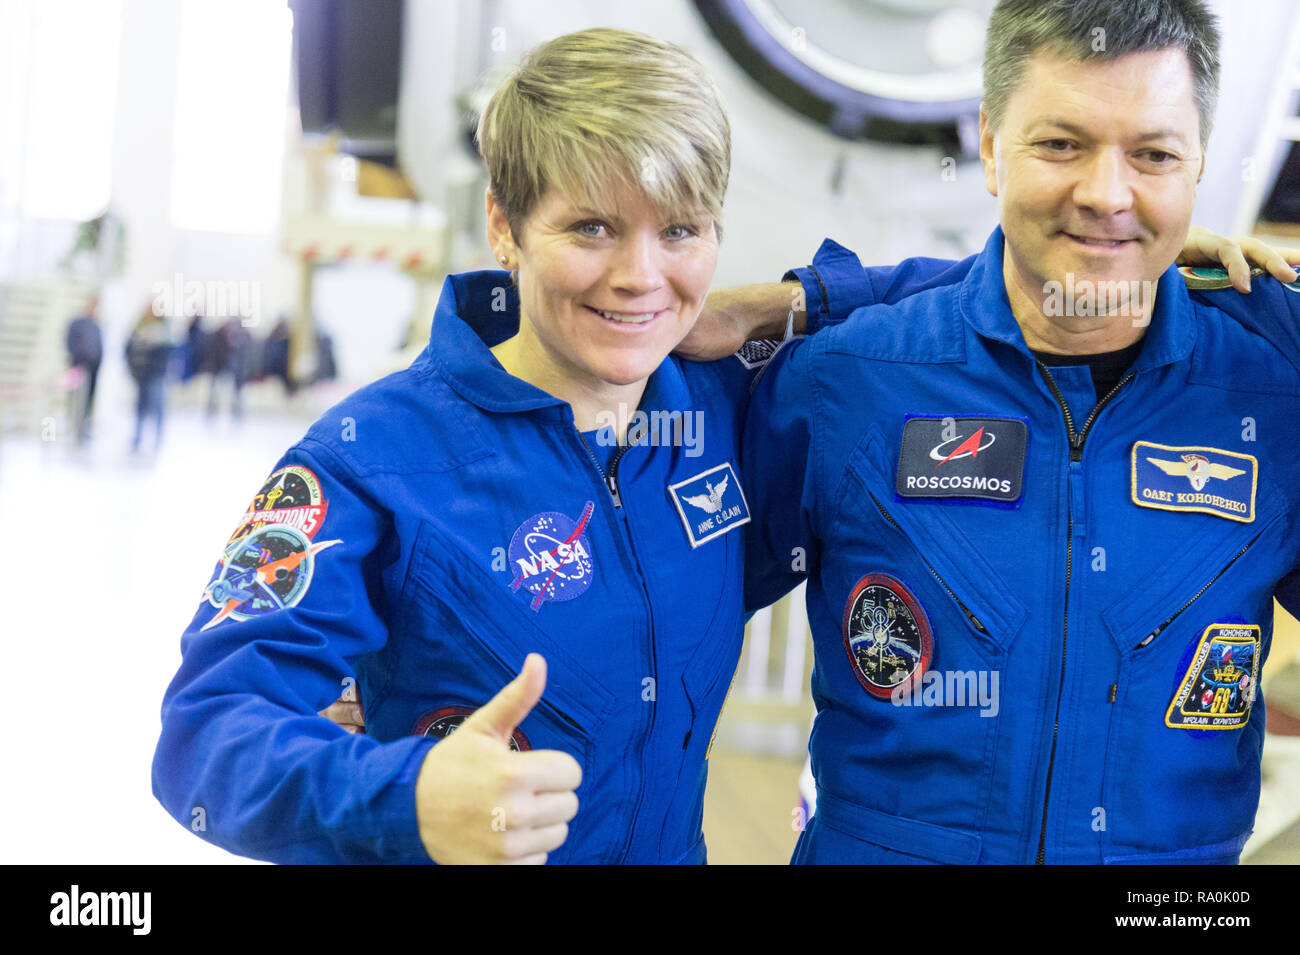 International Space Station Expedition 58 crew member Anne McClain of NASA and Oleg Kononenko of Roscosmos pose for photographers at the Gagarin Cosmonaut Training Center November 13, 2018 in Star City, Russia. Expedition 58 crew are scheduled to launch December 3rd from the Baikonur Cosmodrome in Kazakhstan for a six-and-a-half month mission on the International Space Station. - Stock Image